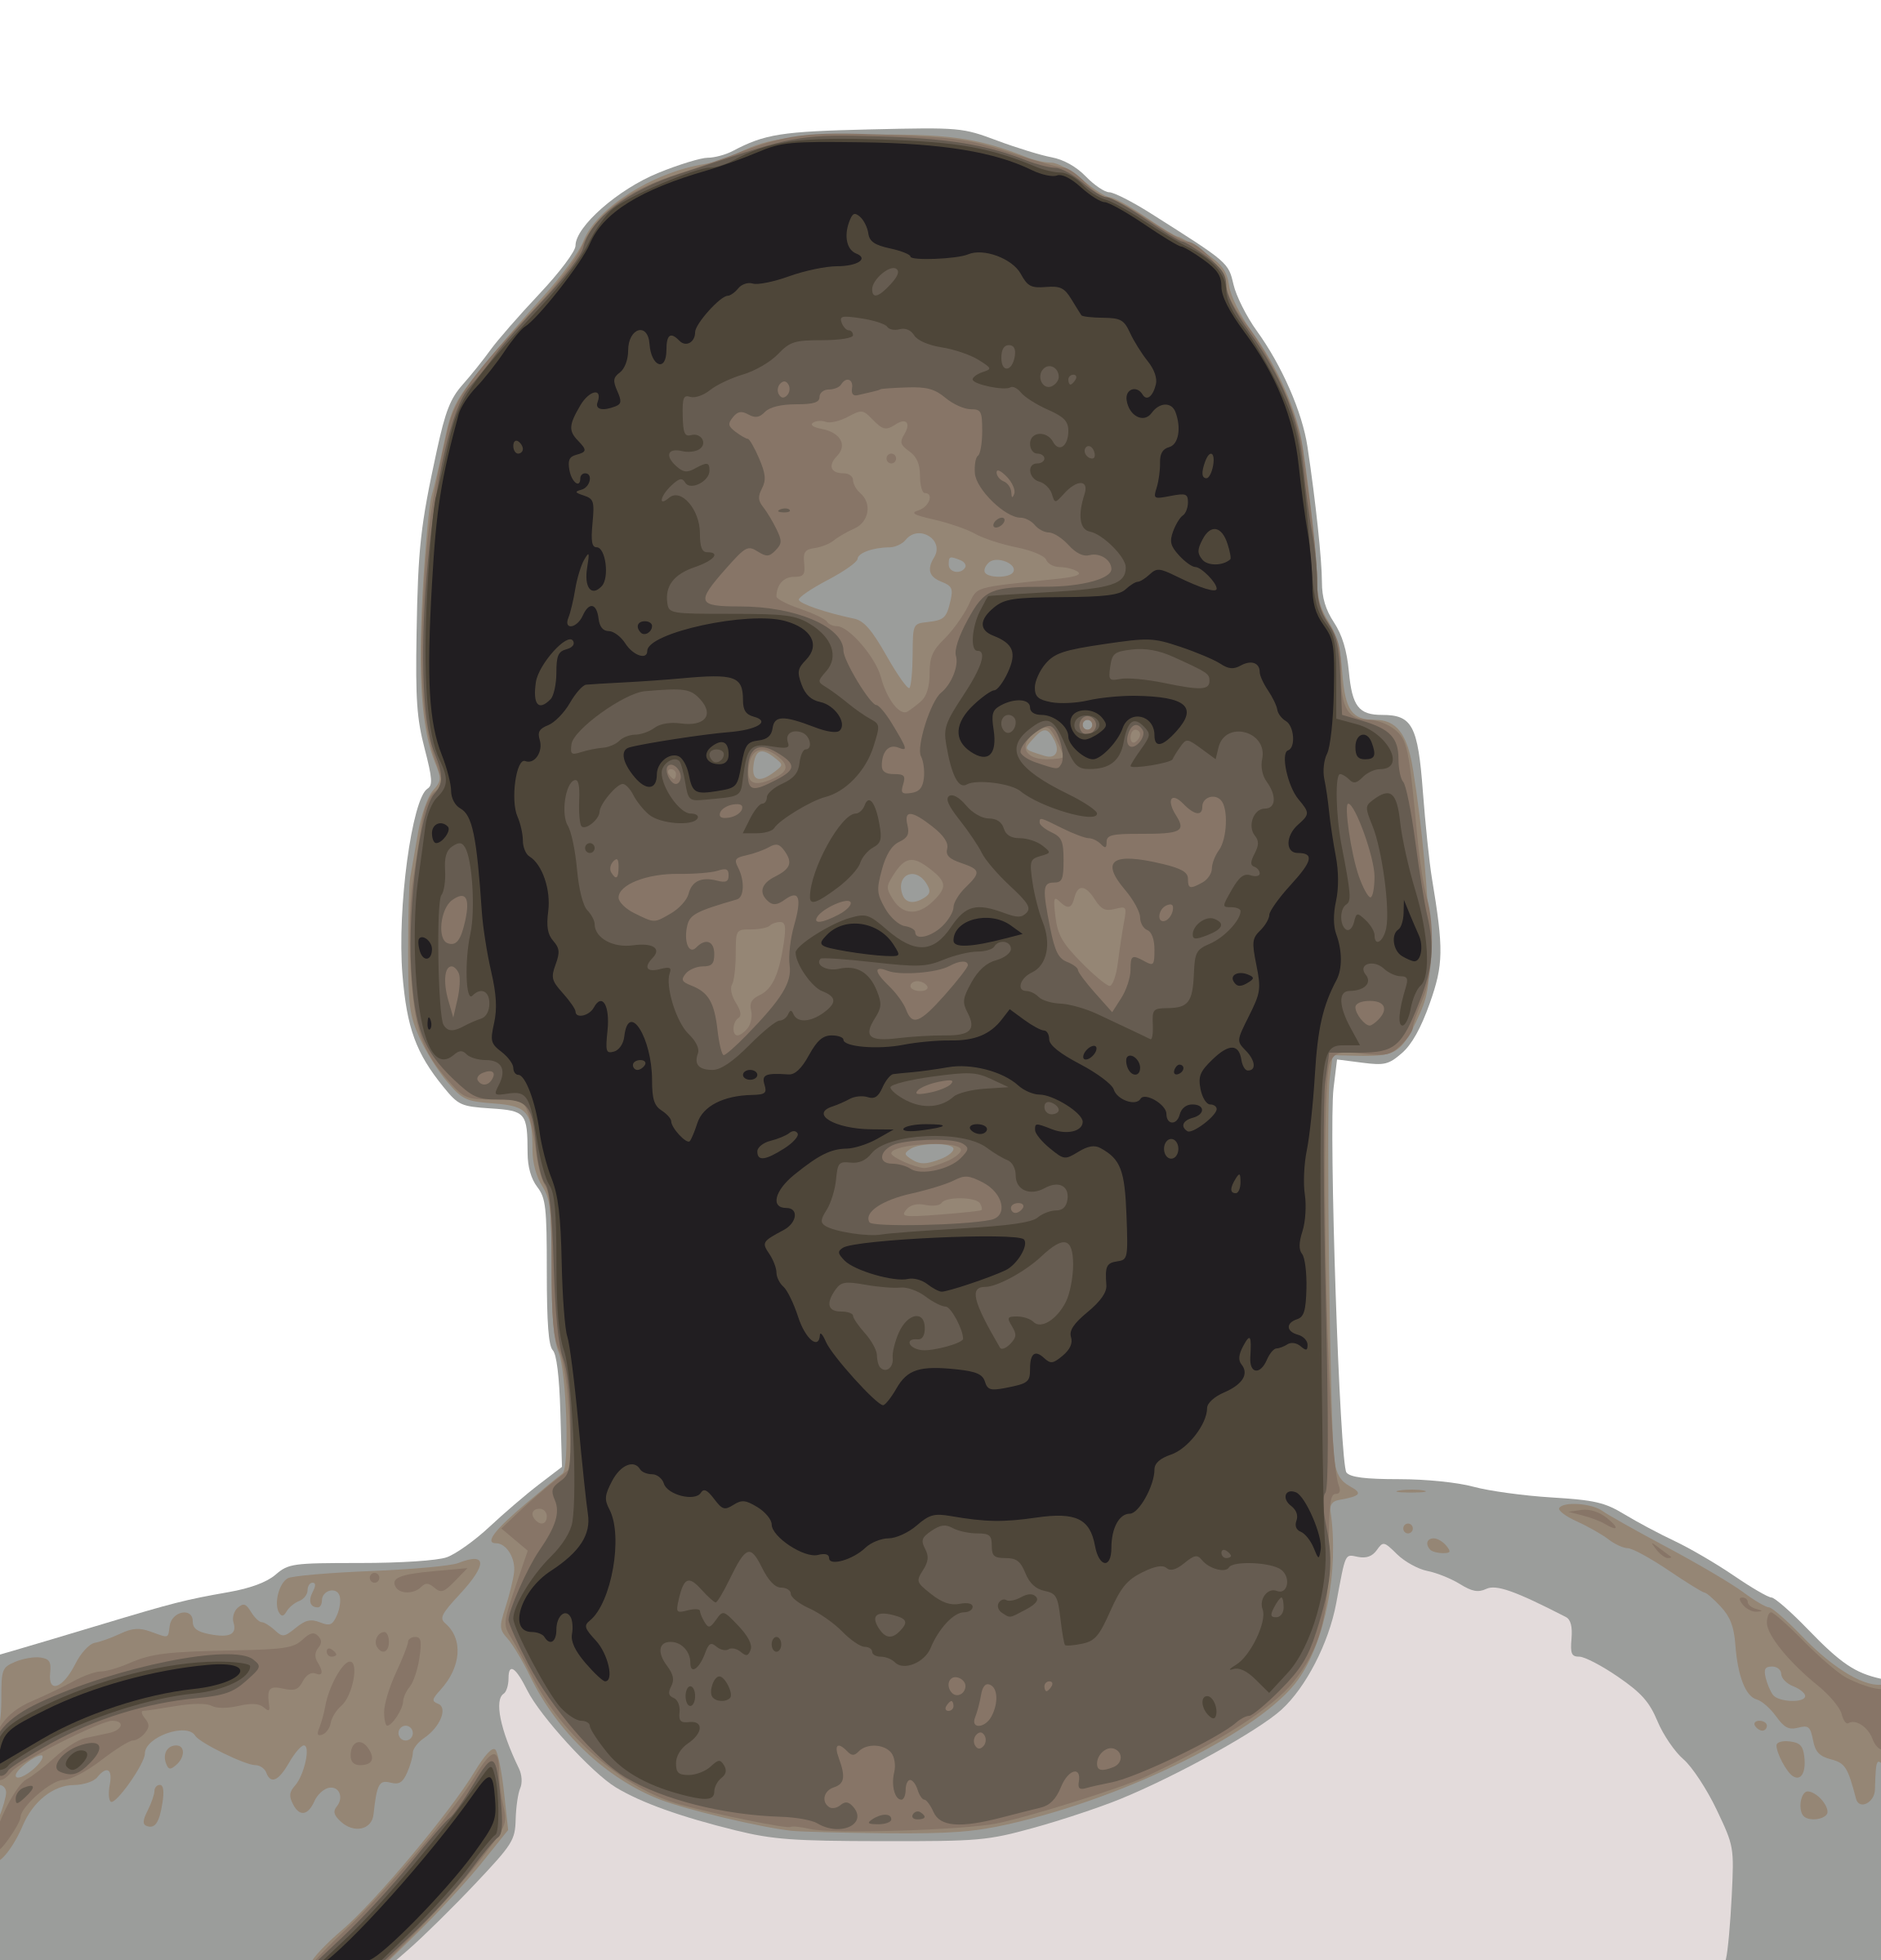 R kelly png. Clipart big image